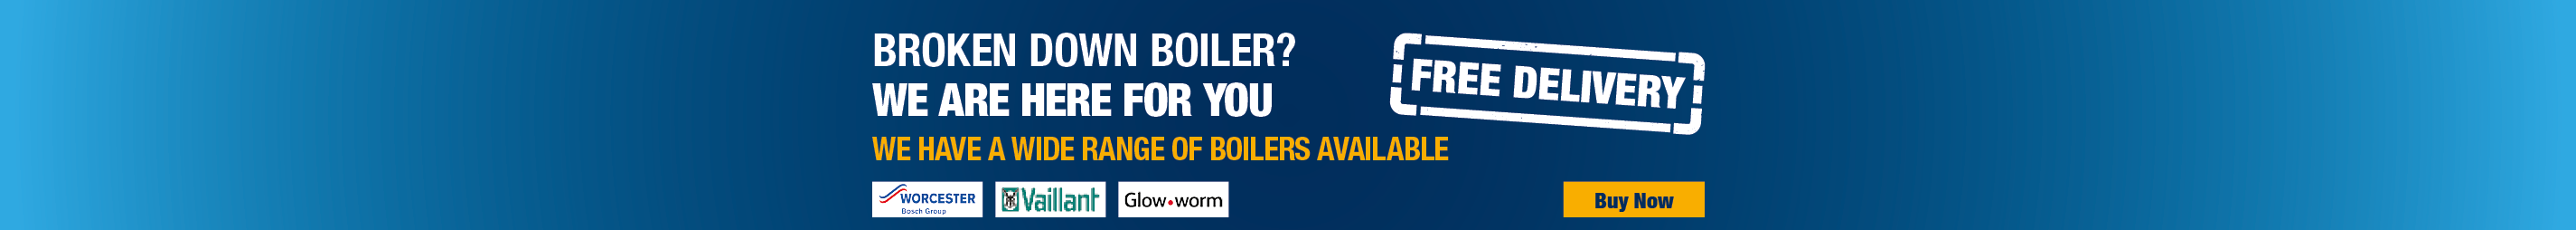 Free Delivery On Our Wide Range Of Boilers